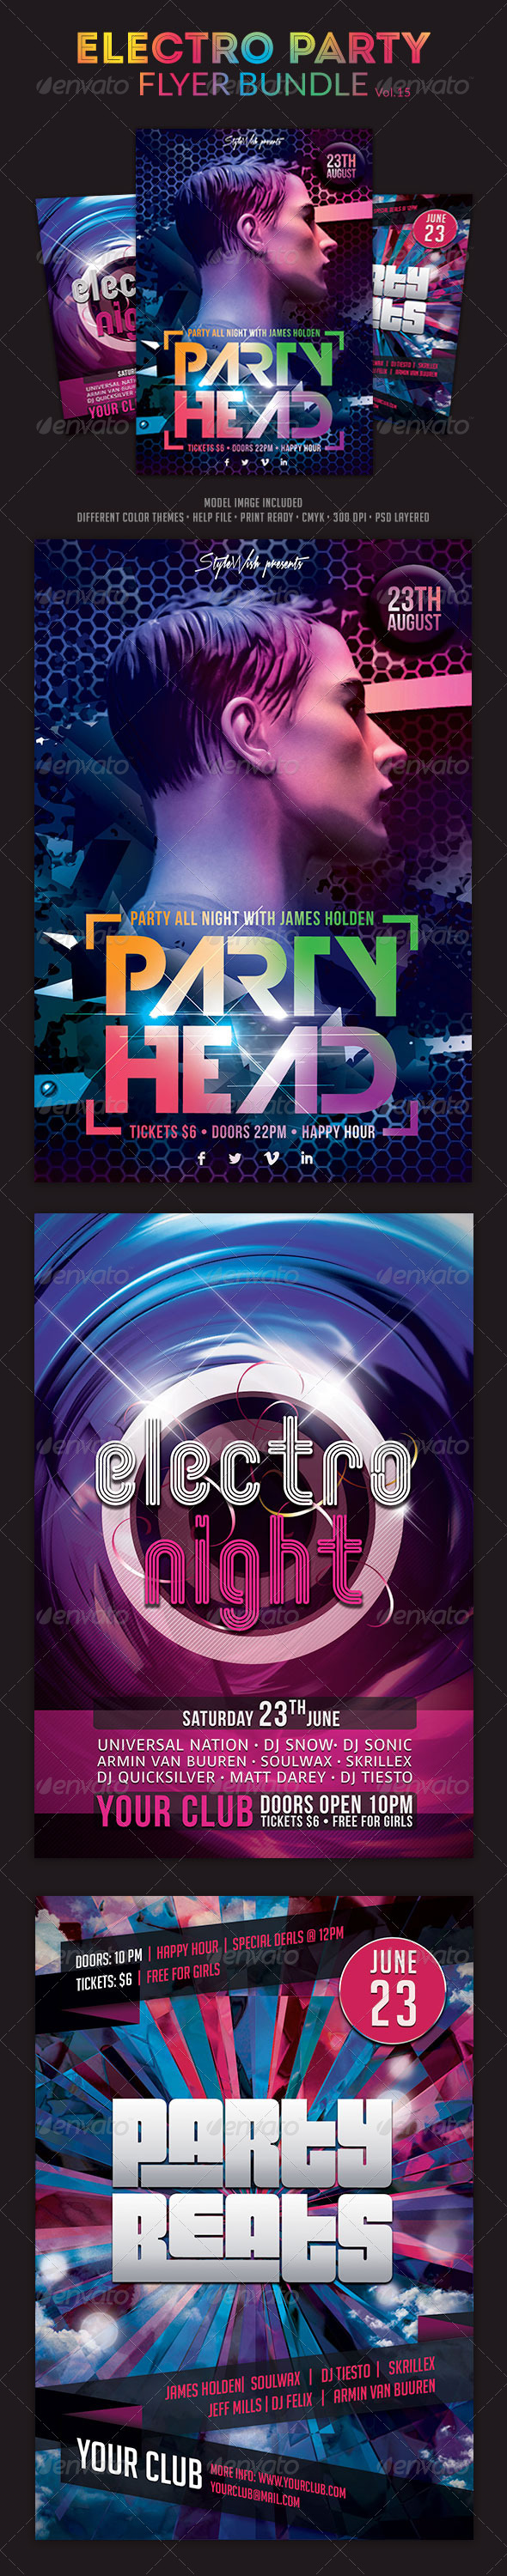 Electro Party Flyer Bundle Vol.3 - Clubs & Parties Events